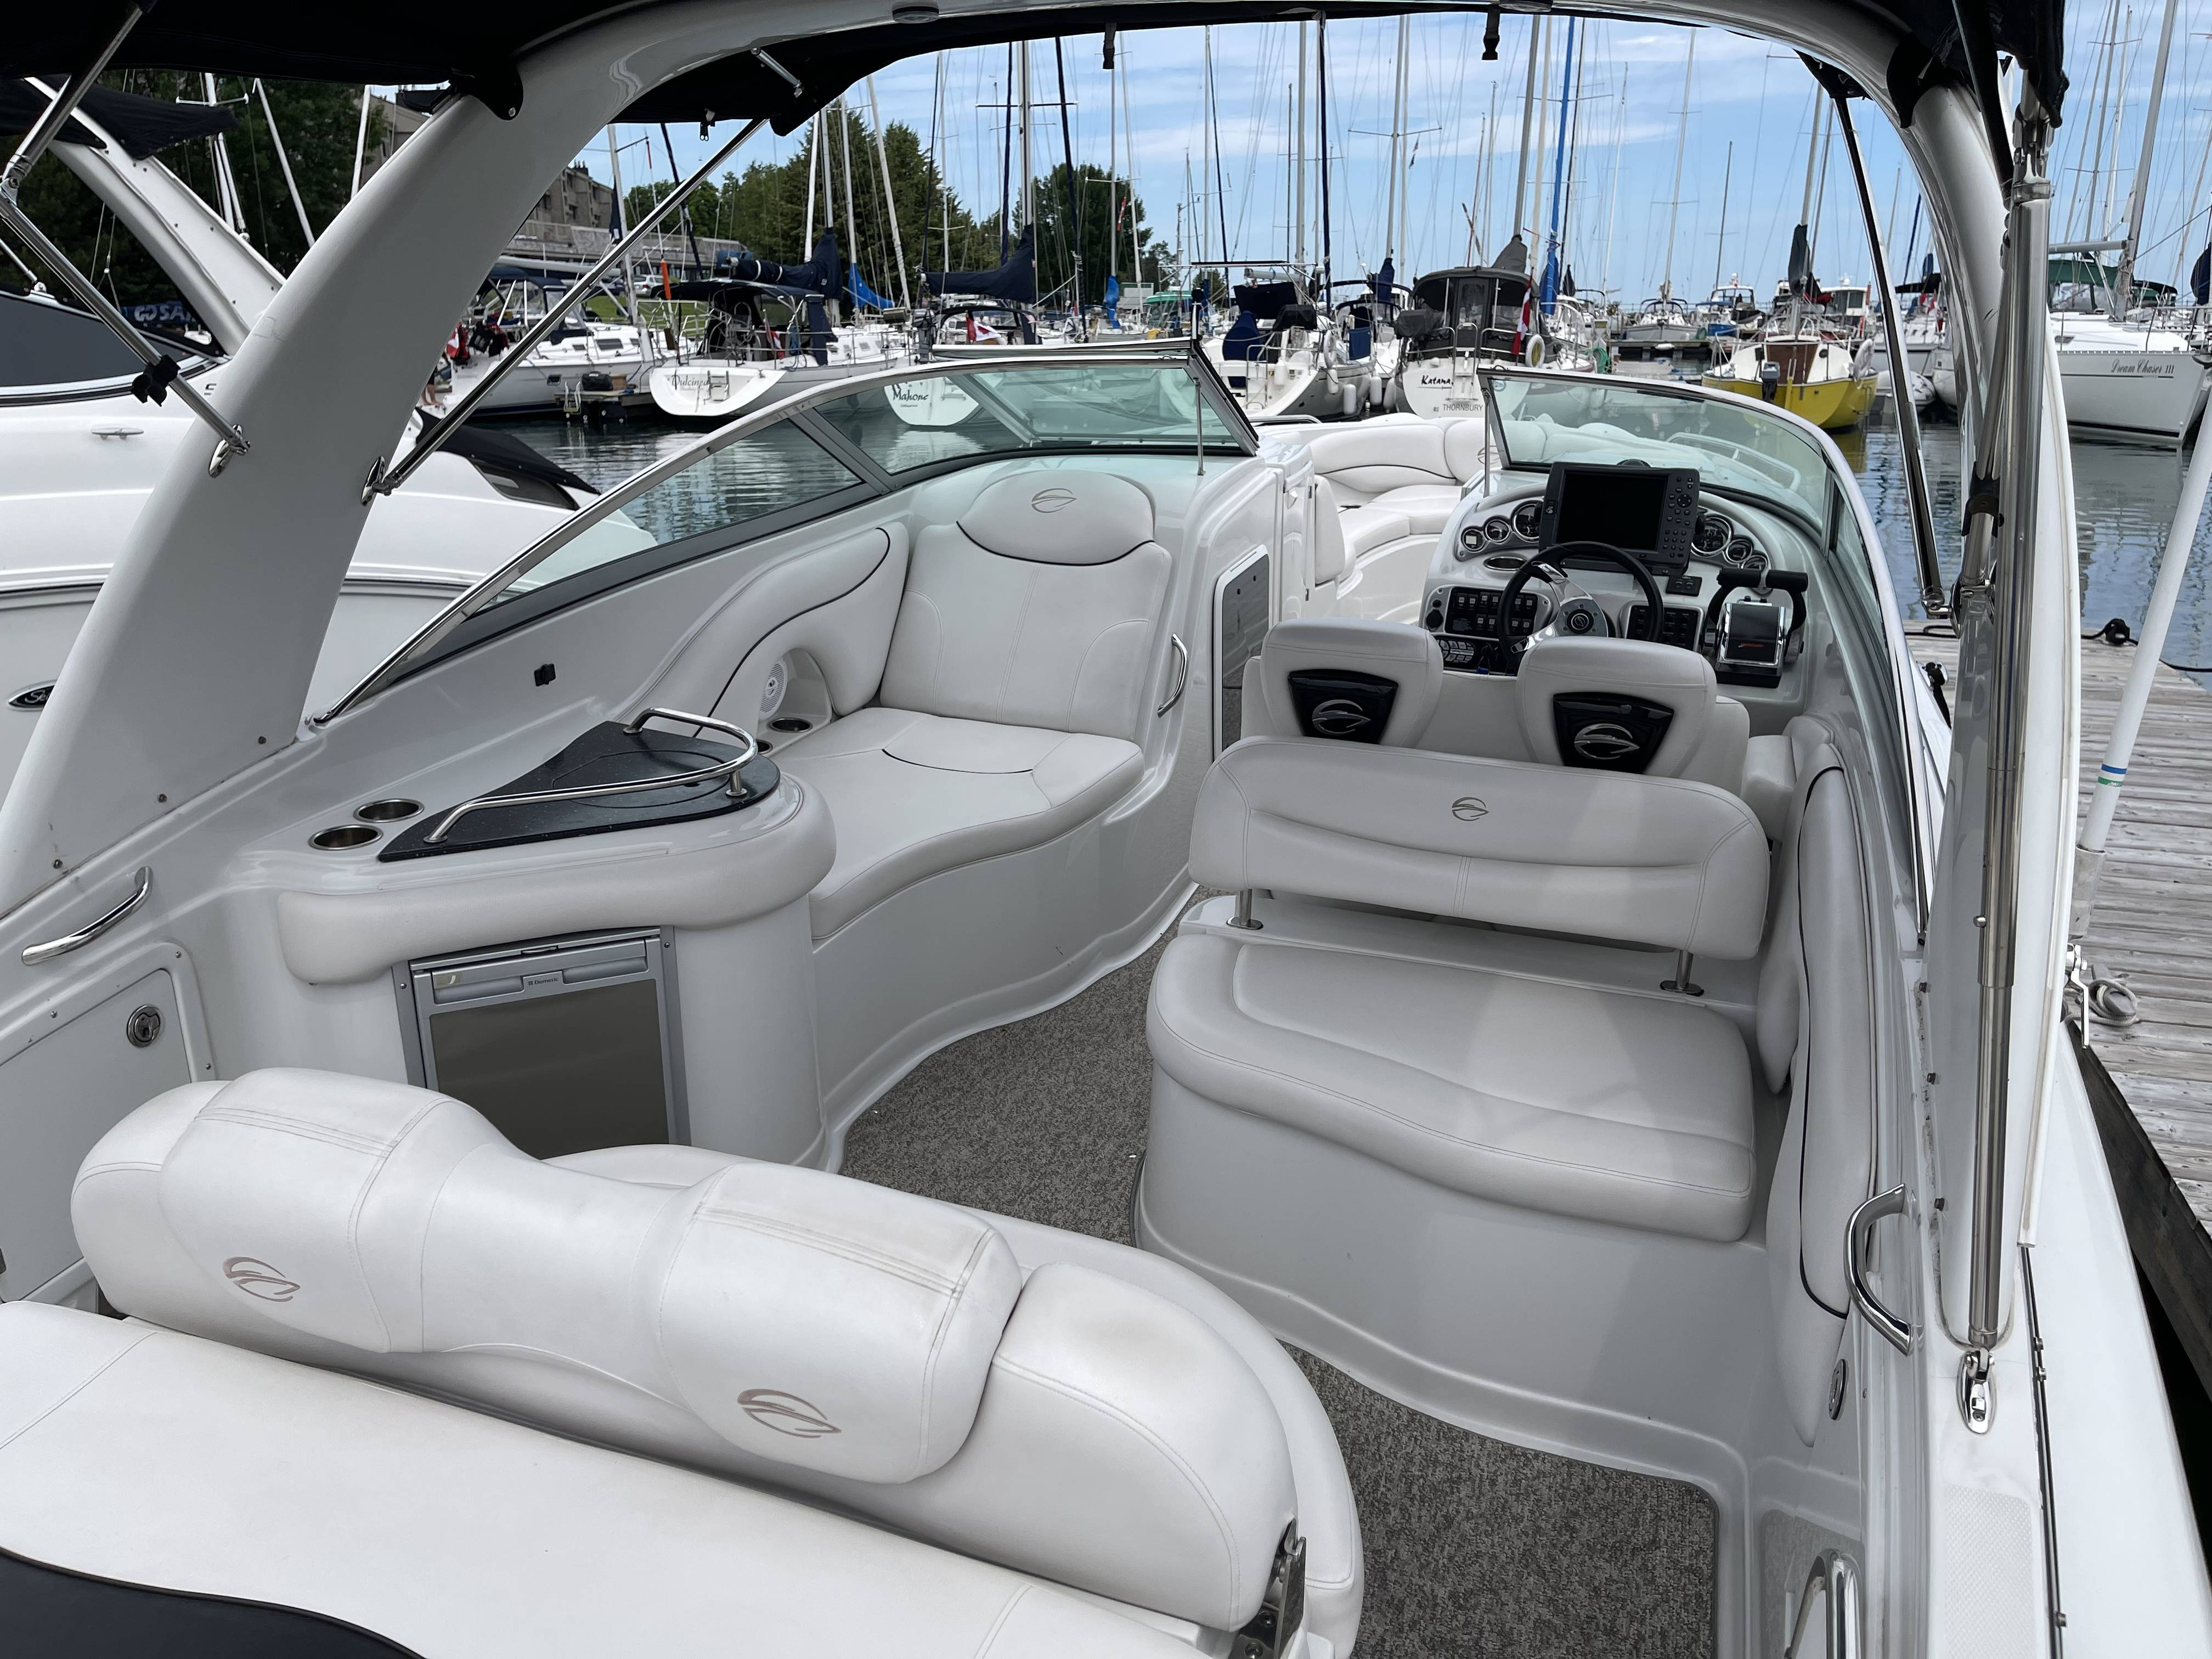 2011 Crownline boat for sale, model of the boat is 320 LS & Image # 21 of 55